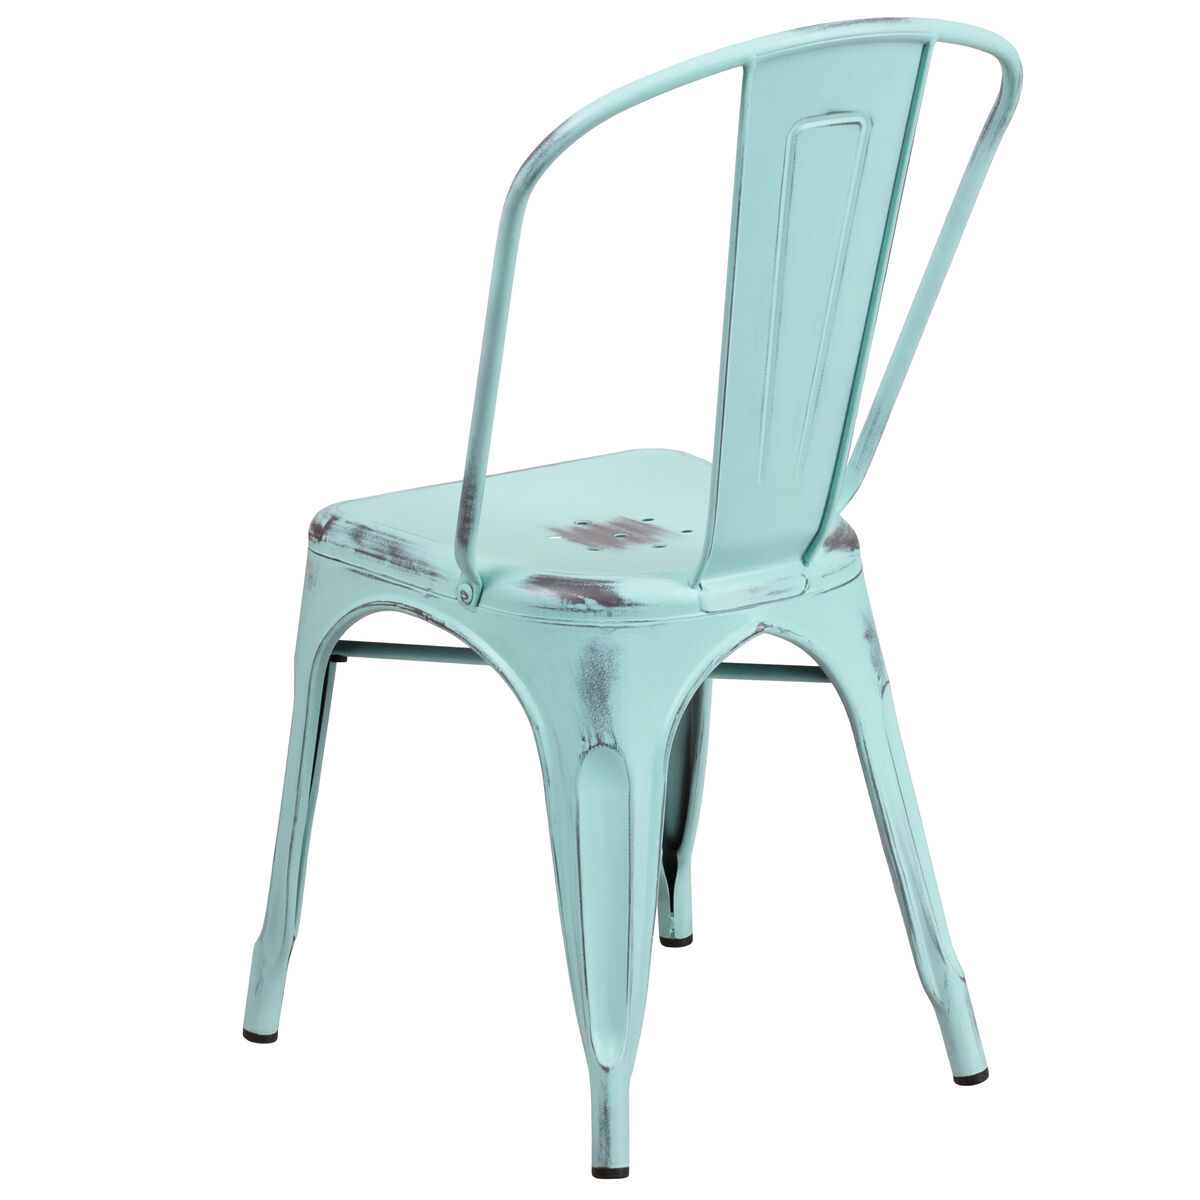 distressed metal furniture. Our Distressed Green-Blue Metal Indoor-Outdoor Stackable Chair Is On Sale  Now. Distressed Metal Furniture